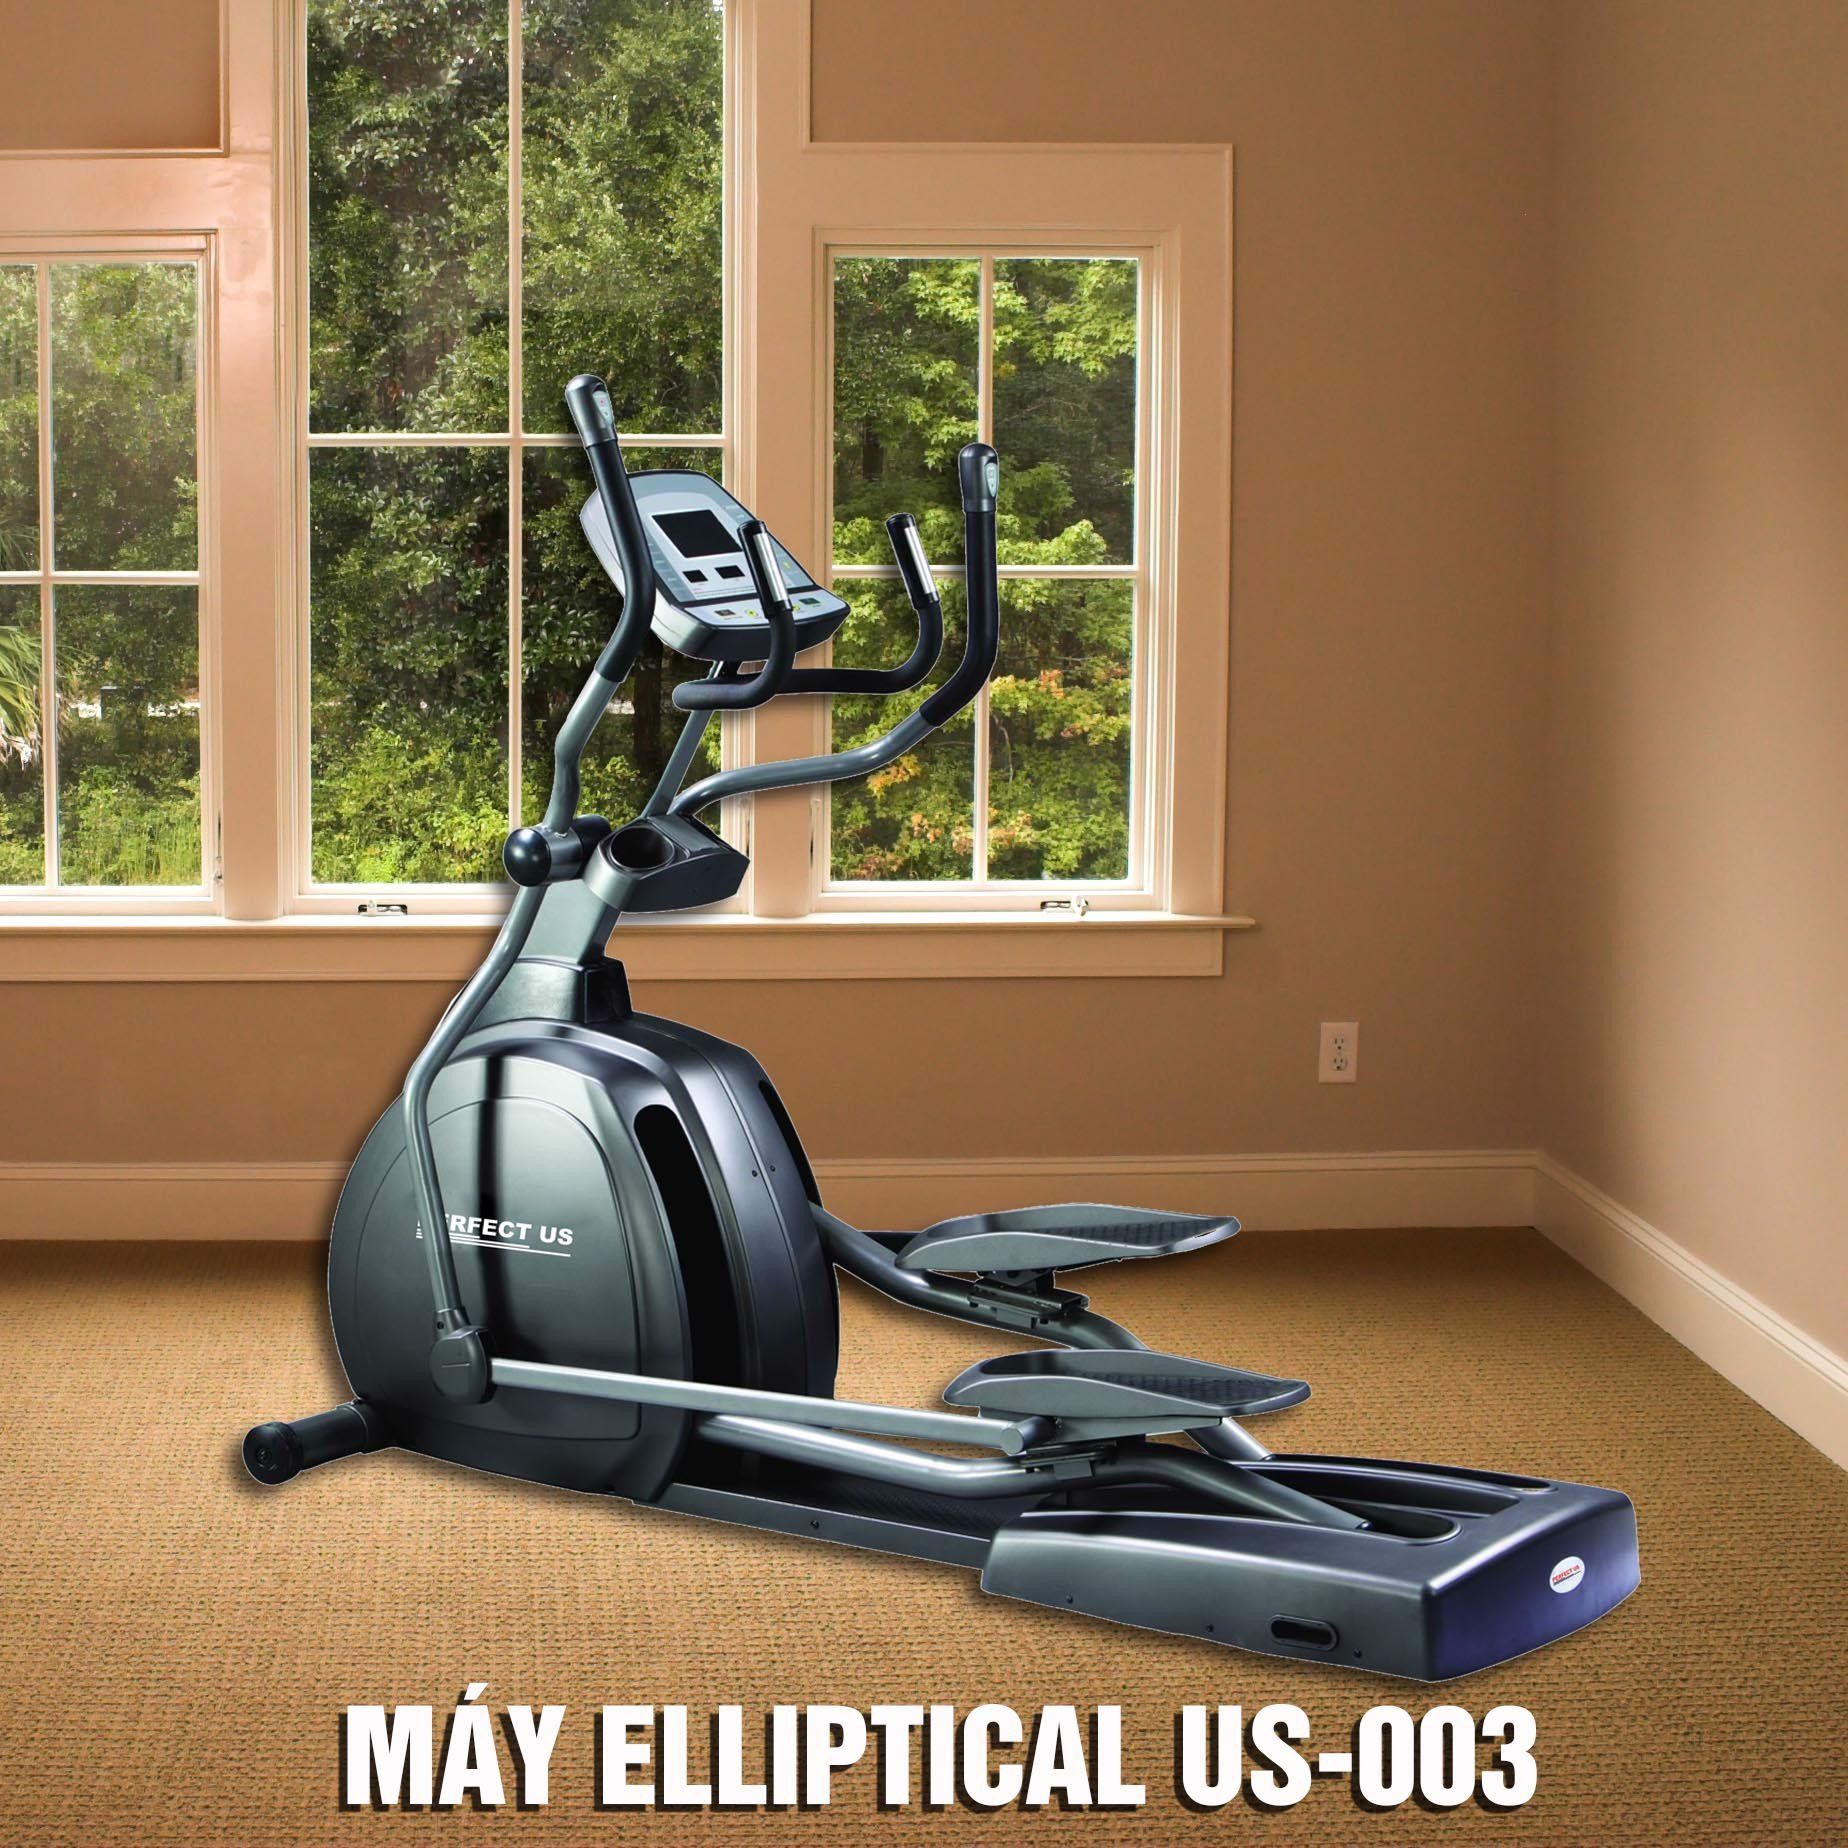 MÁY ELLIPTICAL US-003